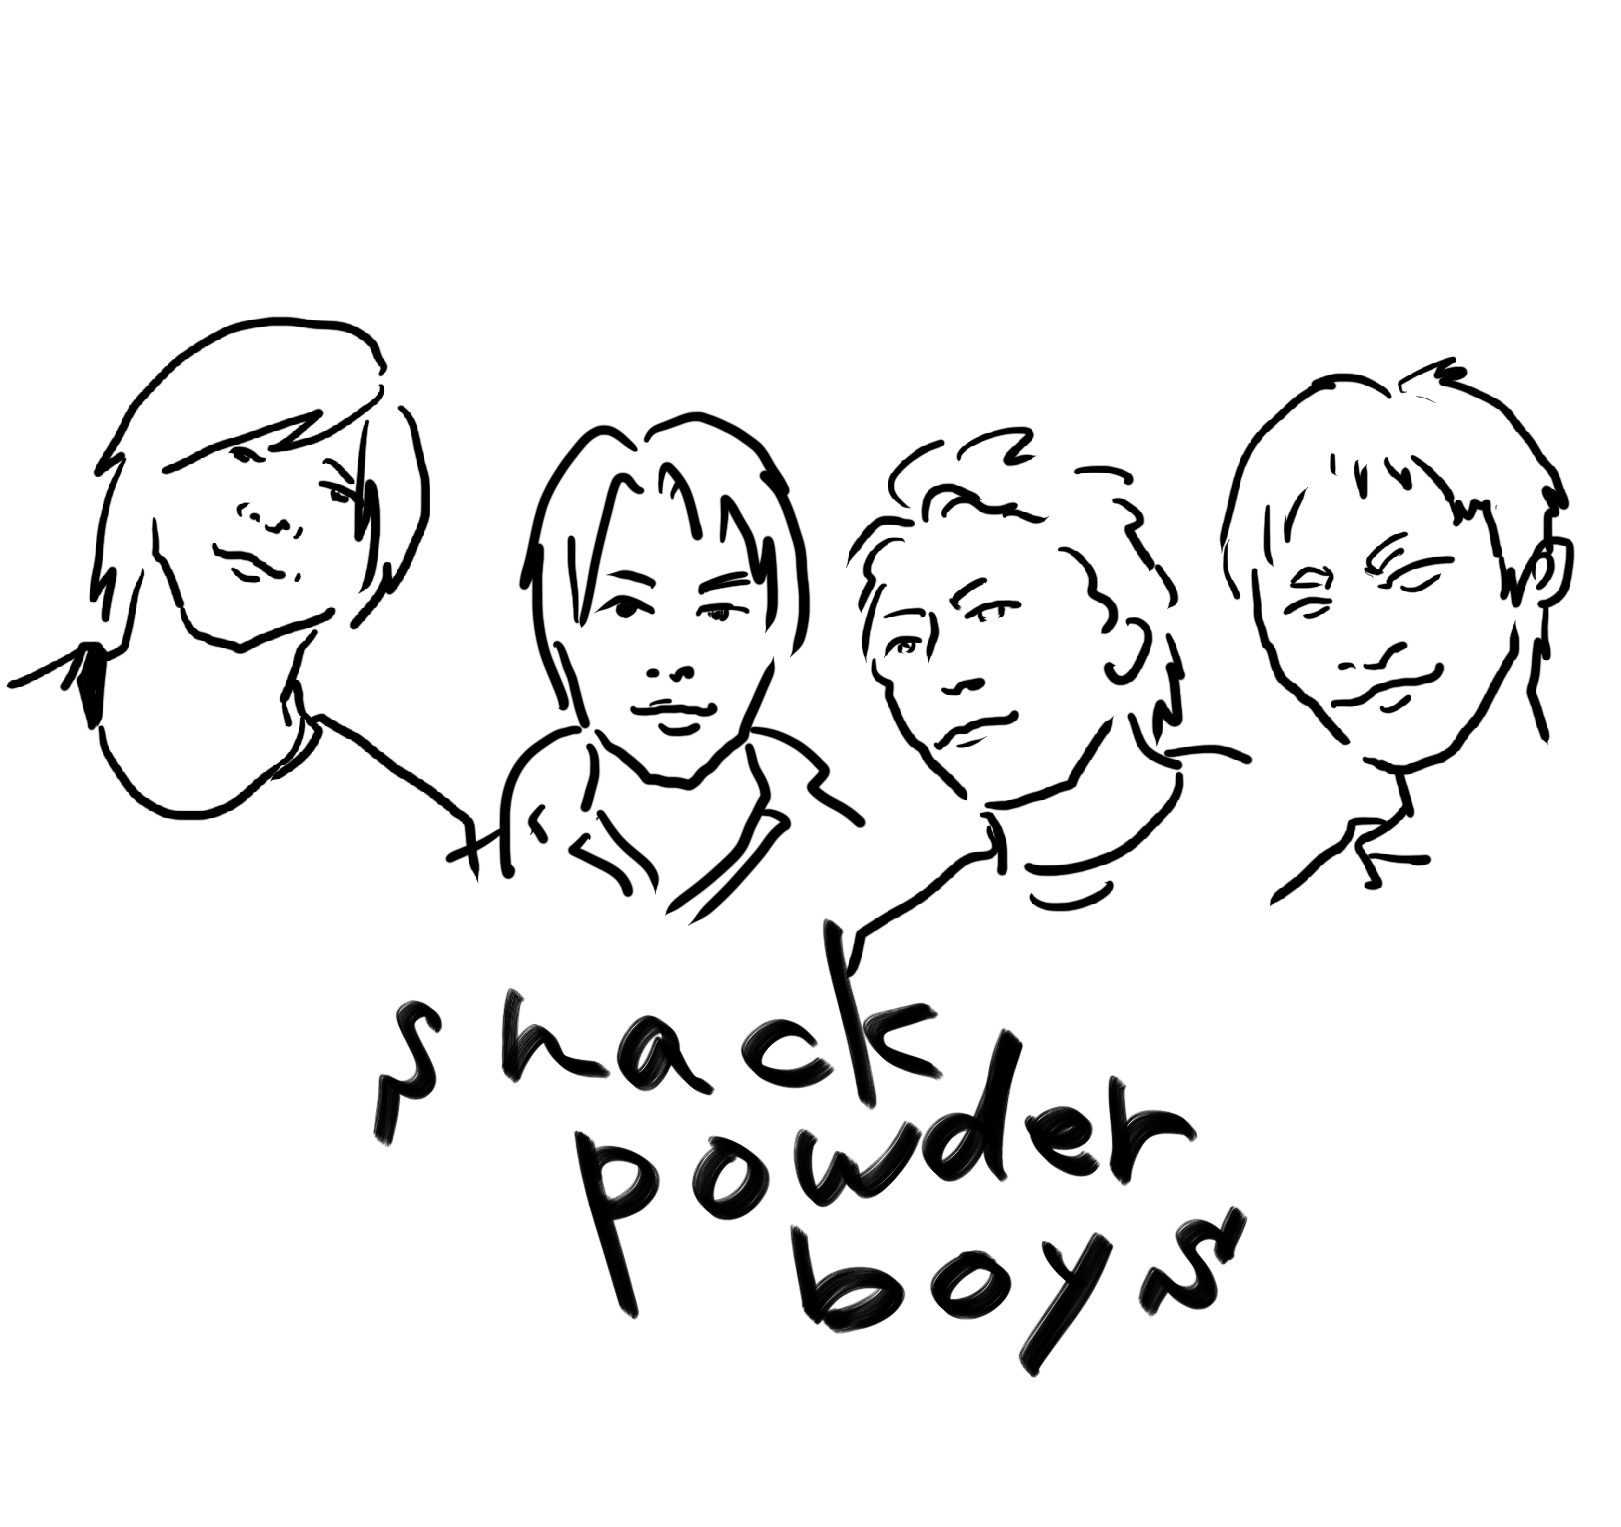 snack powder boys